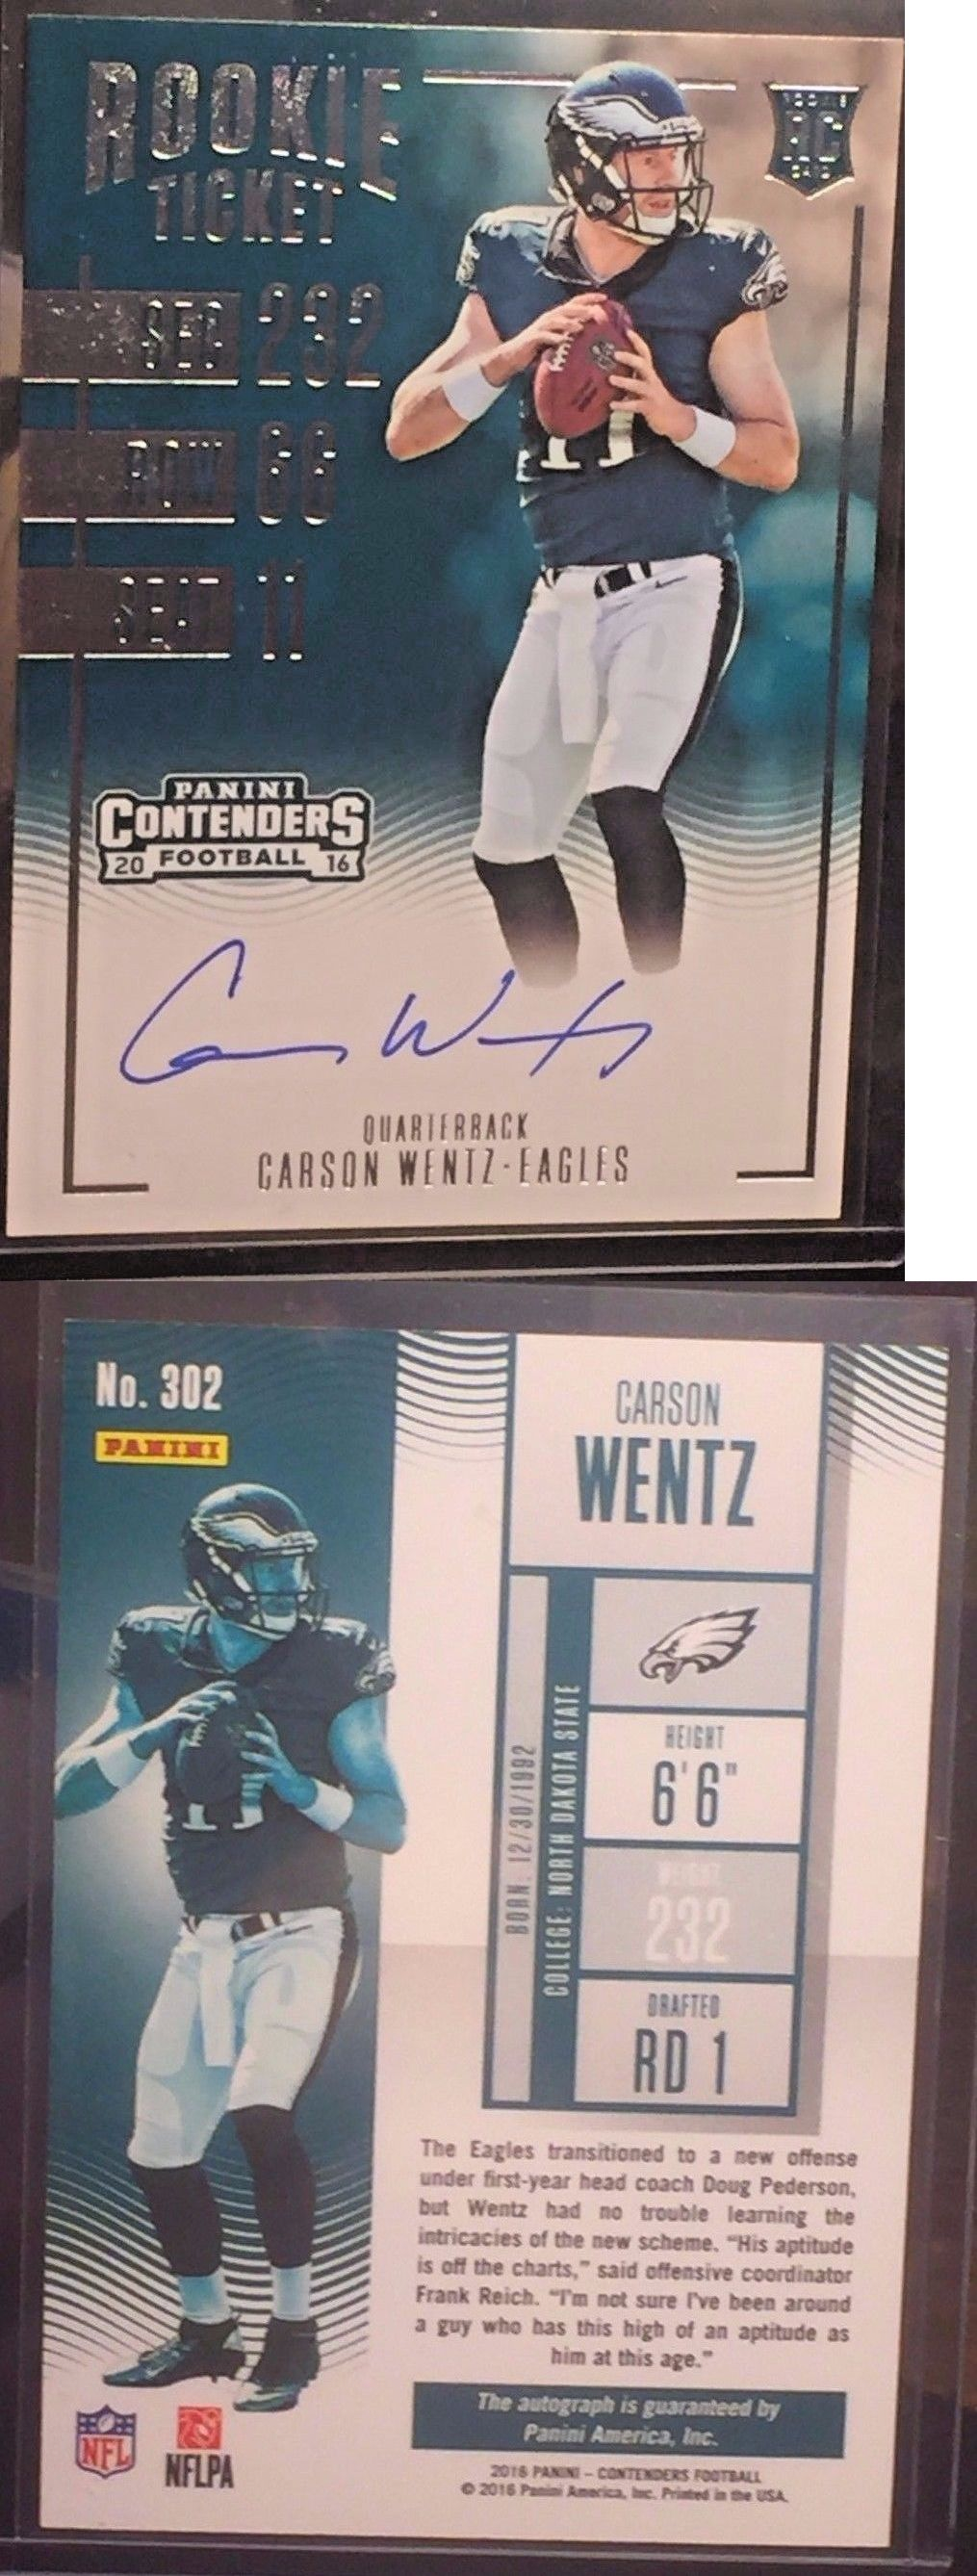 Football Cards 215: 2016 Panini Contenders Rookie Ticket #302 Carson Wentz Rc Auto -> BUY IT NOW ONLY: $250 on eBay!